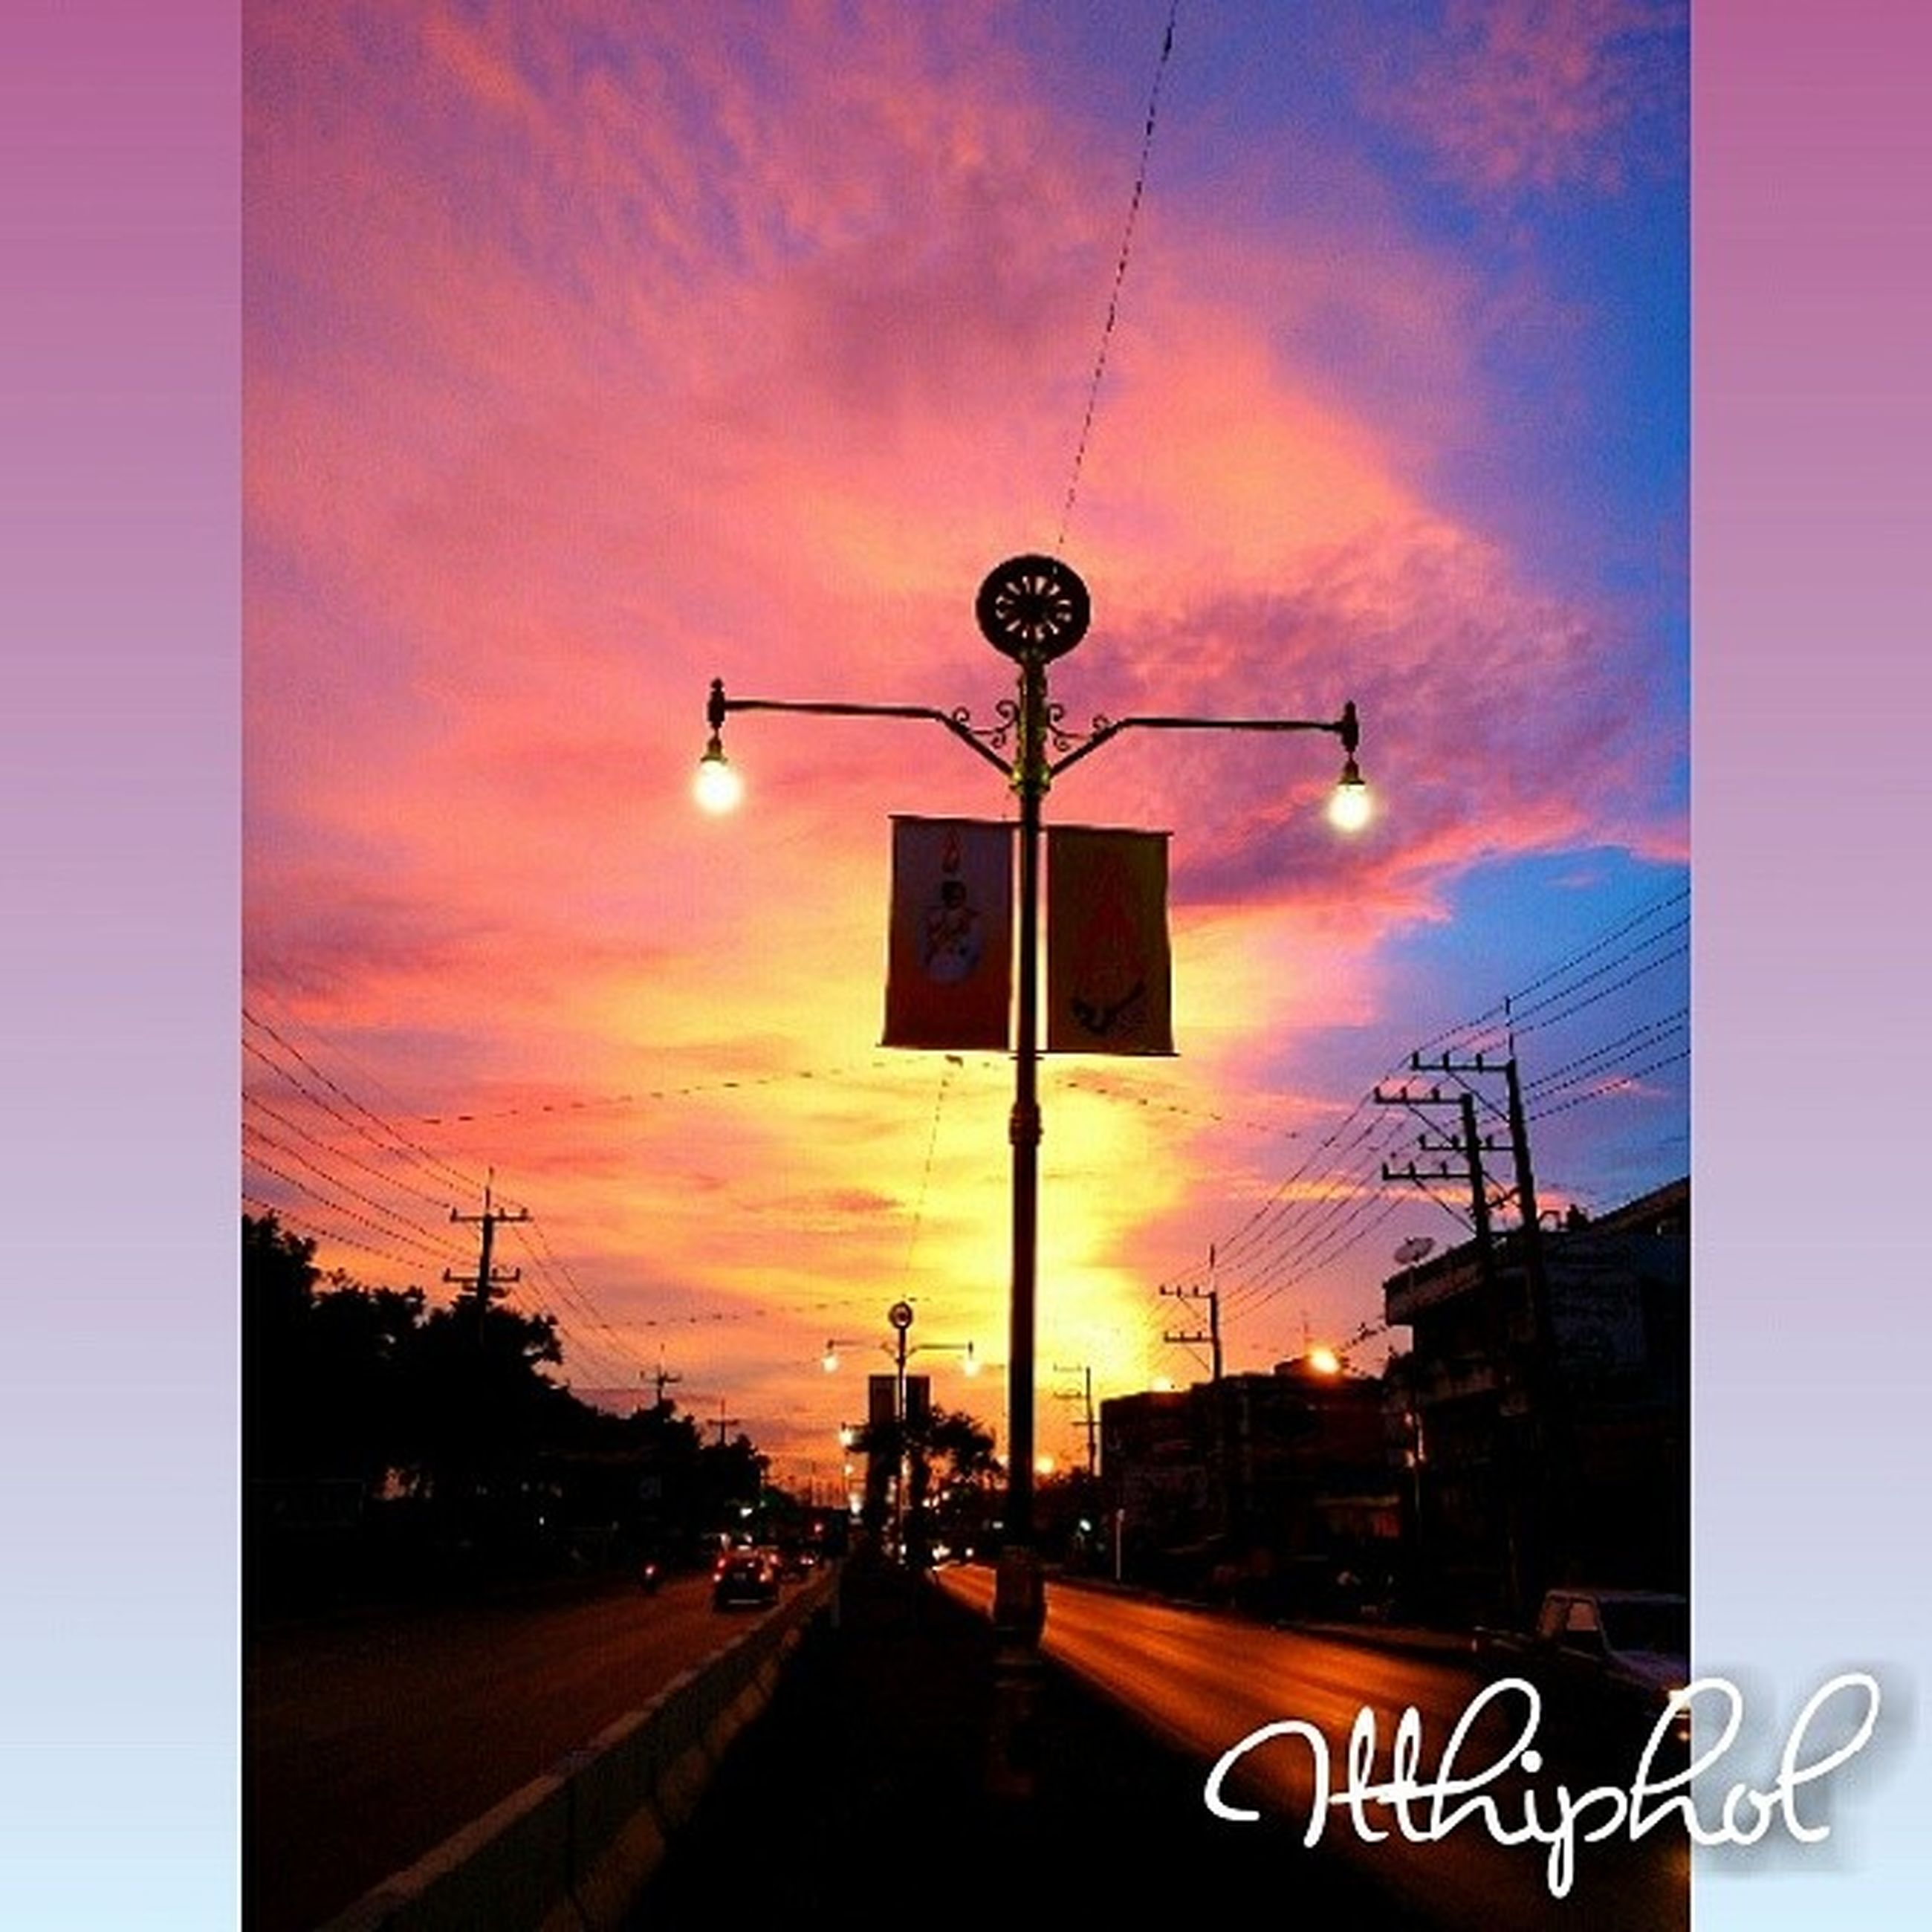 street light, sunset, sky, lighting equipment, building exterior, transportation, architecture, built structure, road sign, illuminated, street, communication, orange color, road, cloud - sky, low angle view, car, guidance, information sign, the way forward